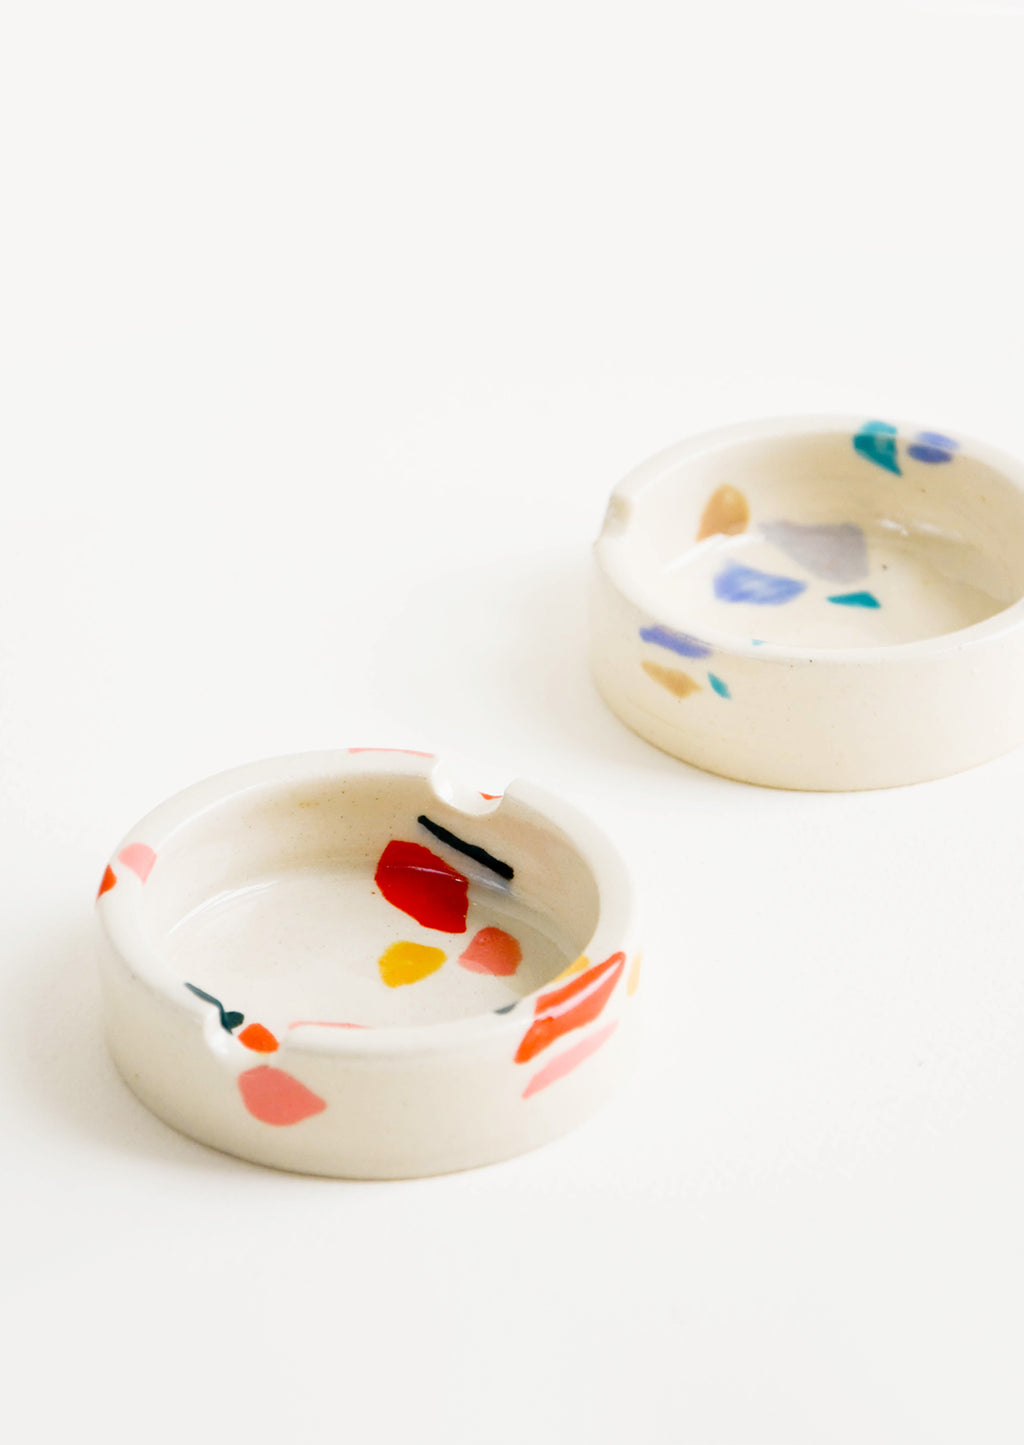 2: Ceramic ashtray with allover hand painted terrazzo pattern in a variety of colors